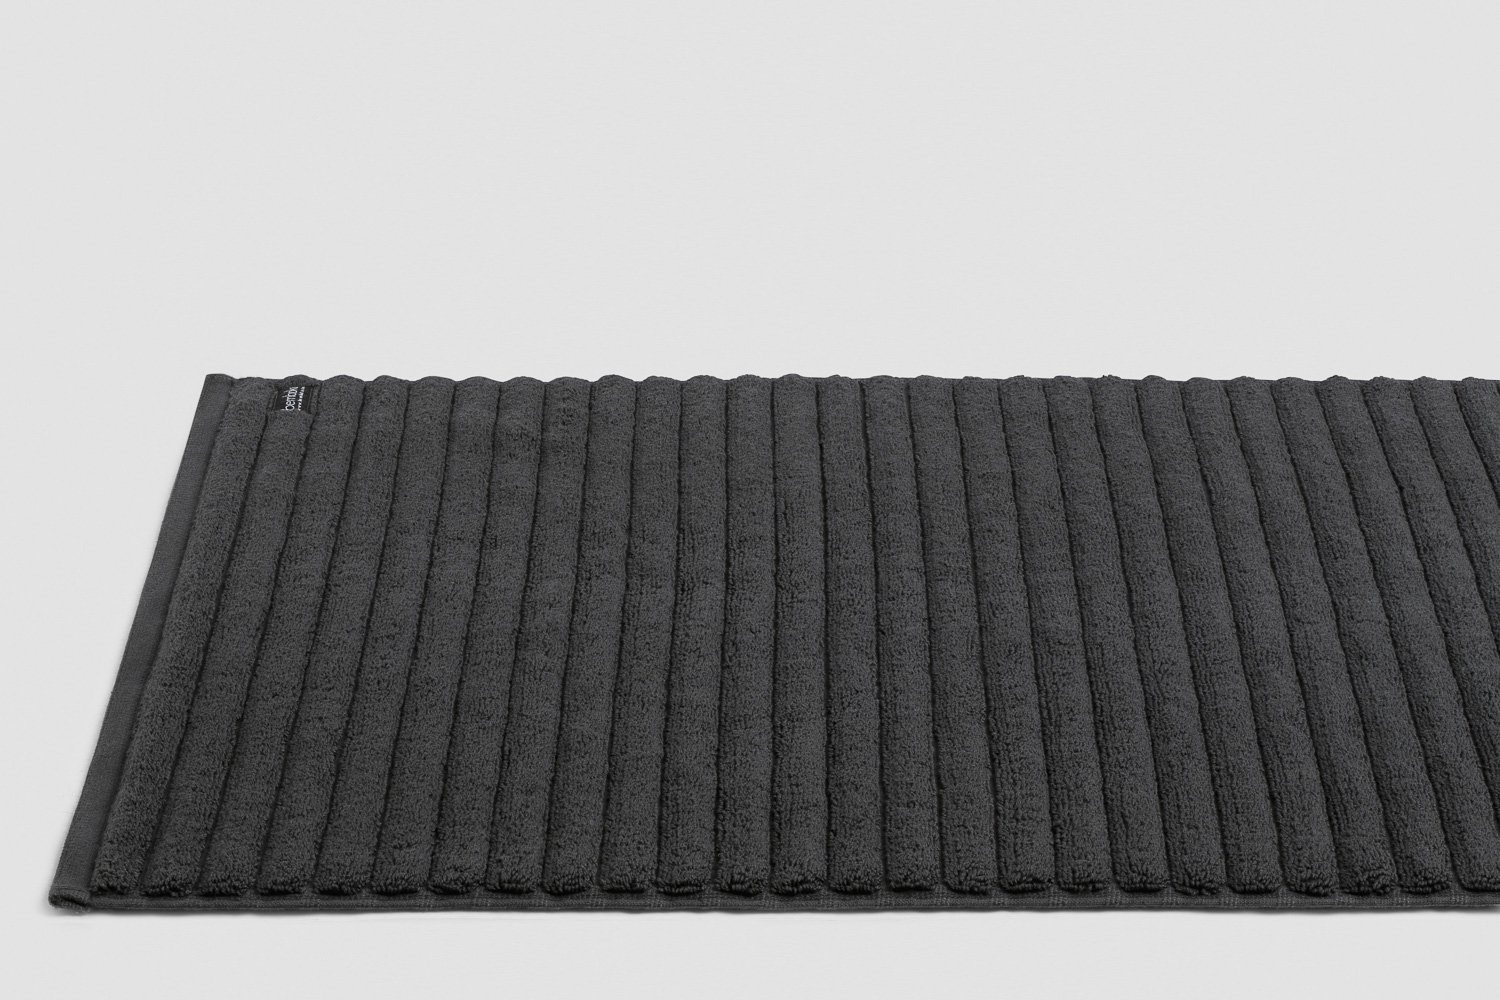 luxury turkish bath mats in charcoal colour